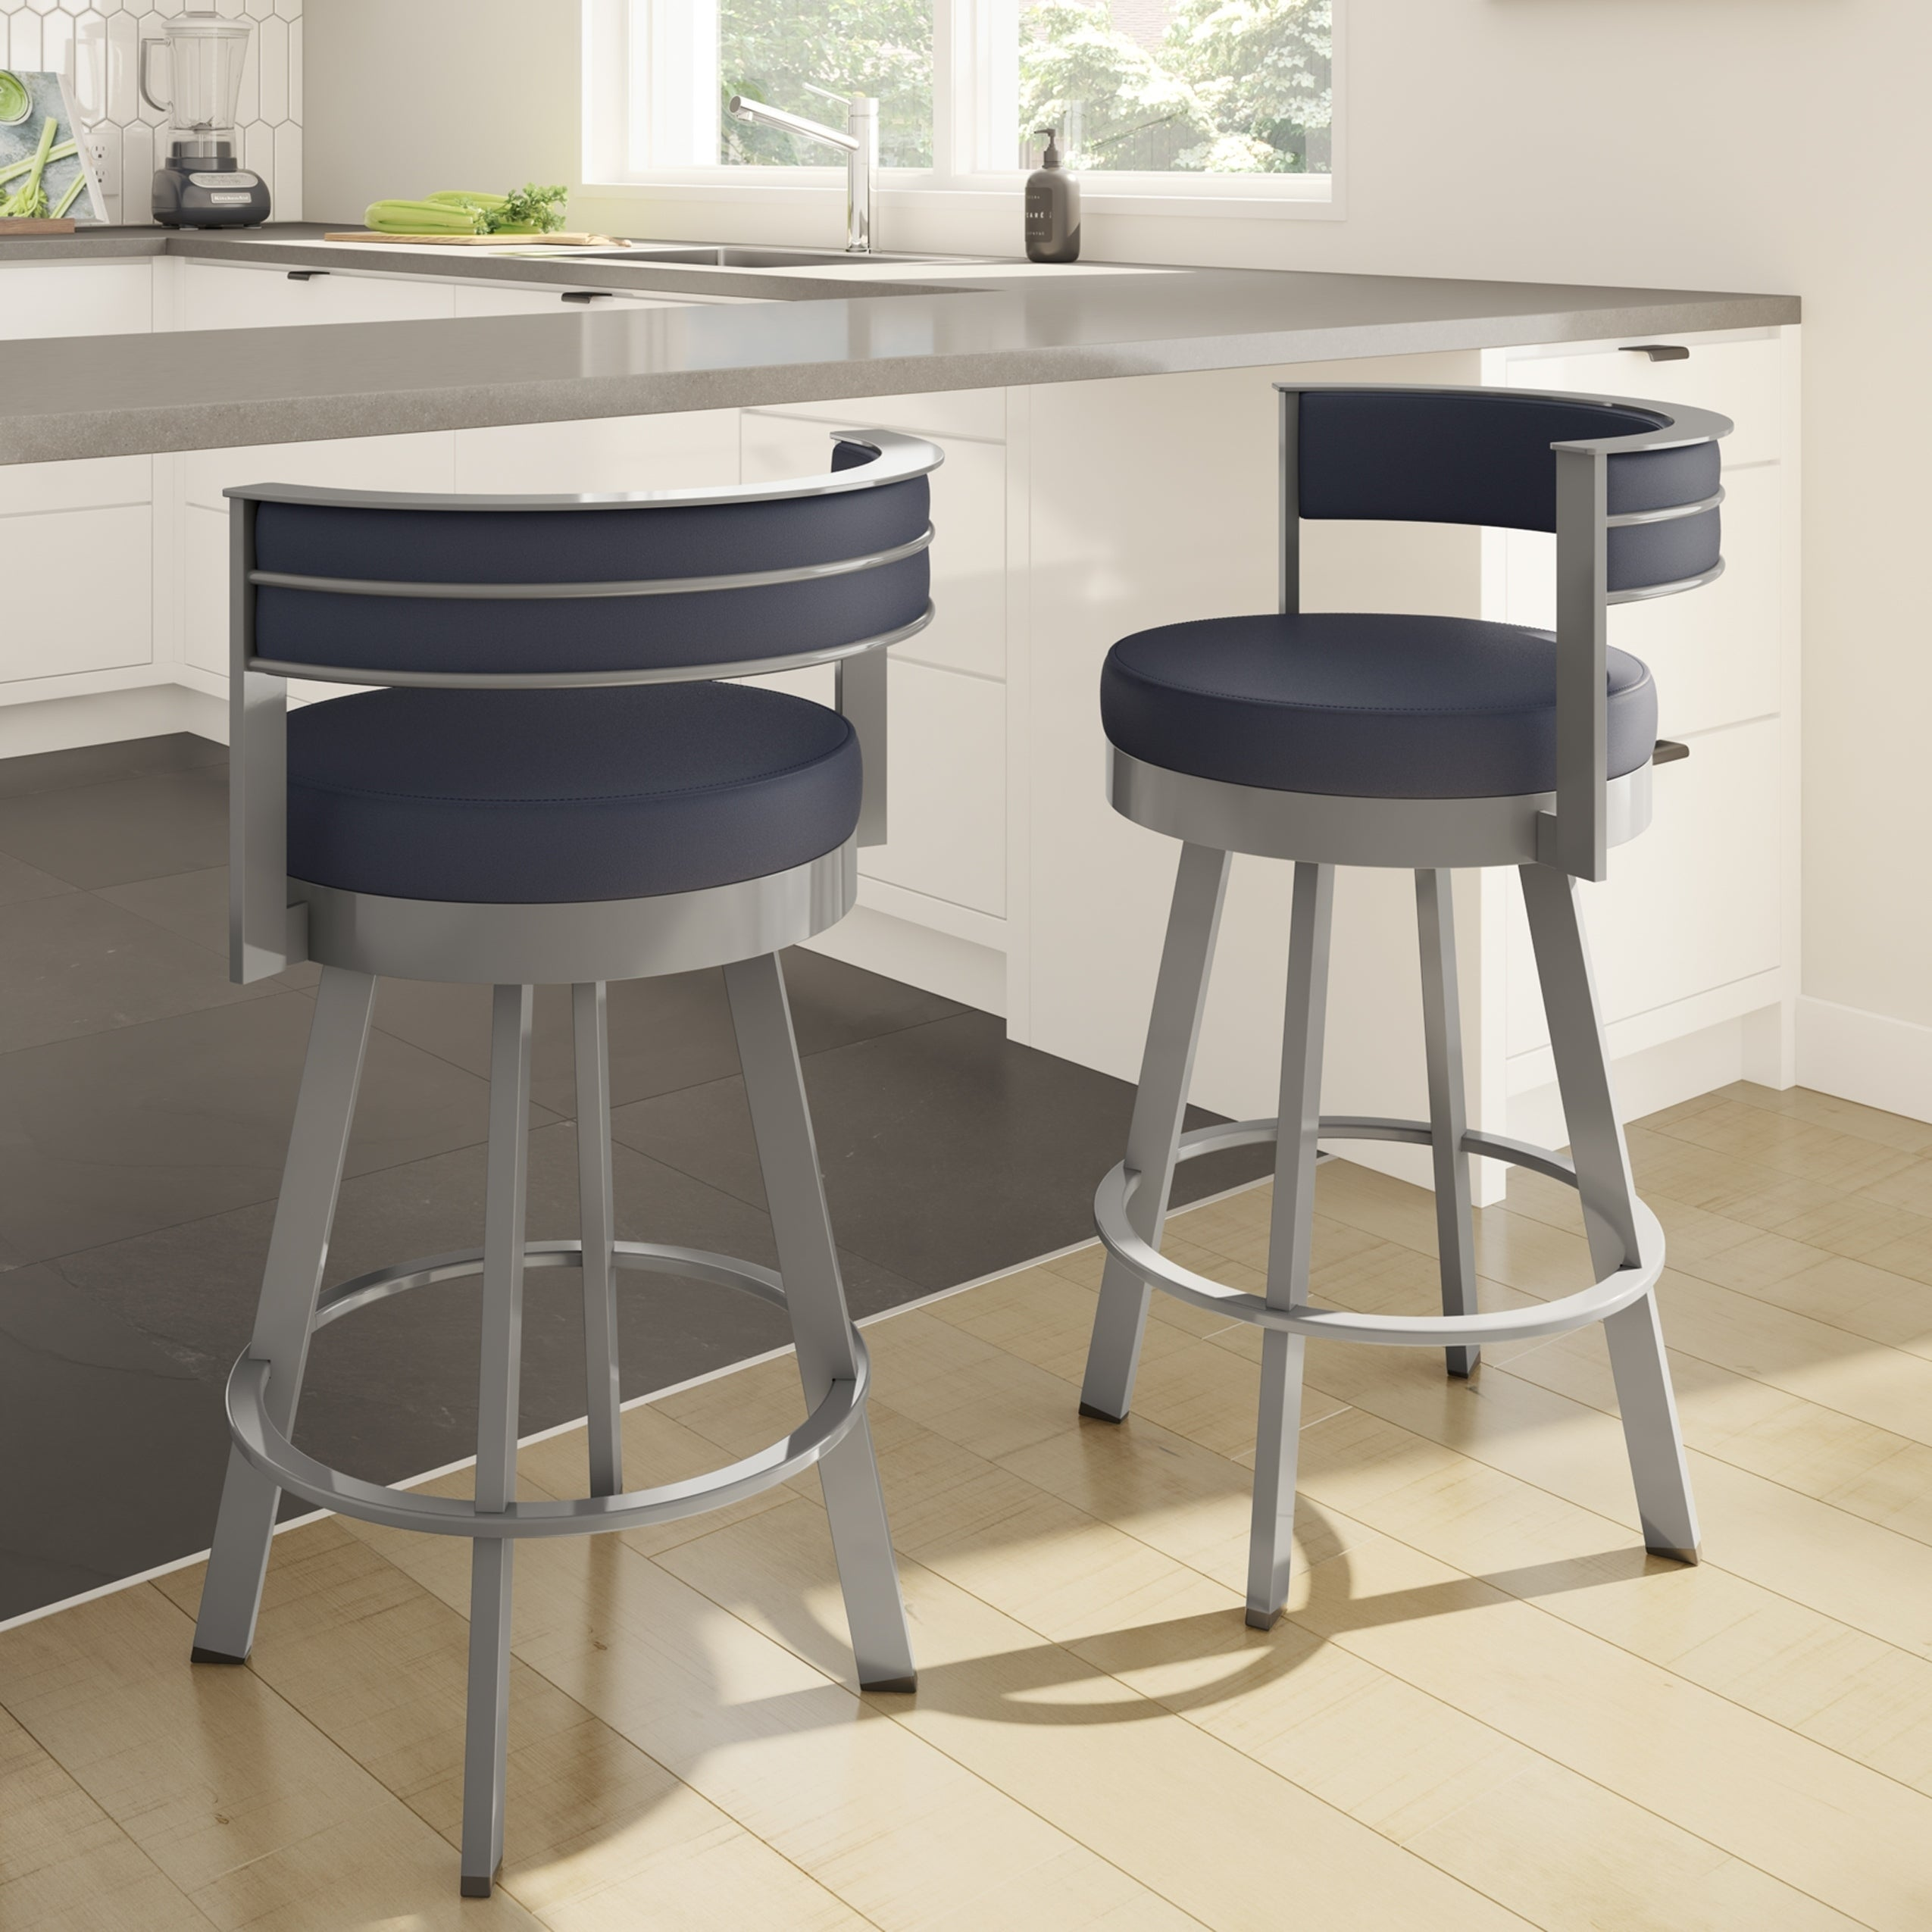 Admirable Strick Bolton Klykov Upholstered Back 26 Inch Swivel Metal Counter Stool Squirreltailoven Fun Painted Chair Ideas Images Squirreltailovenorg